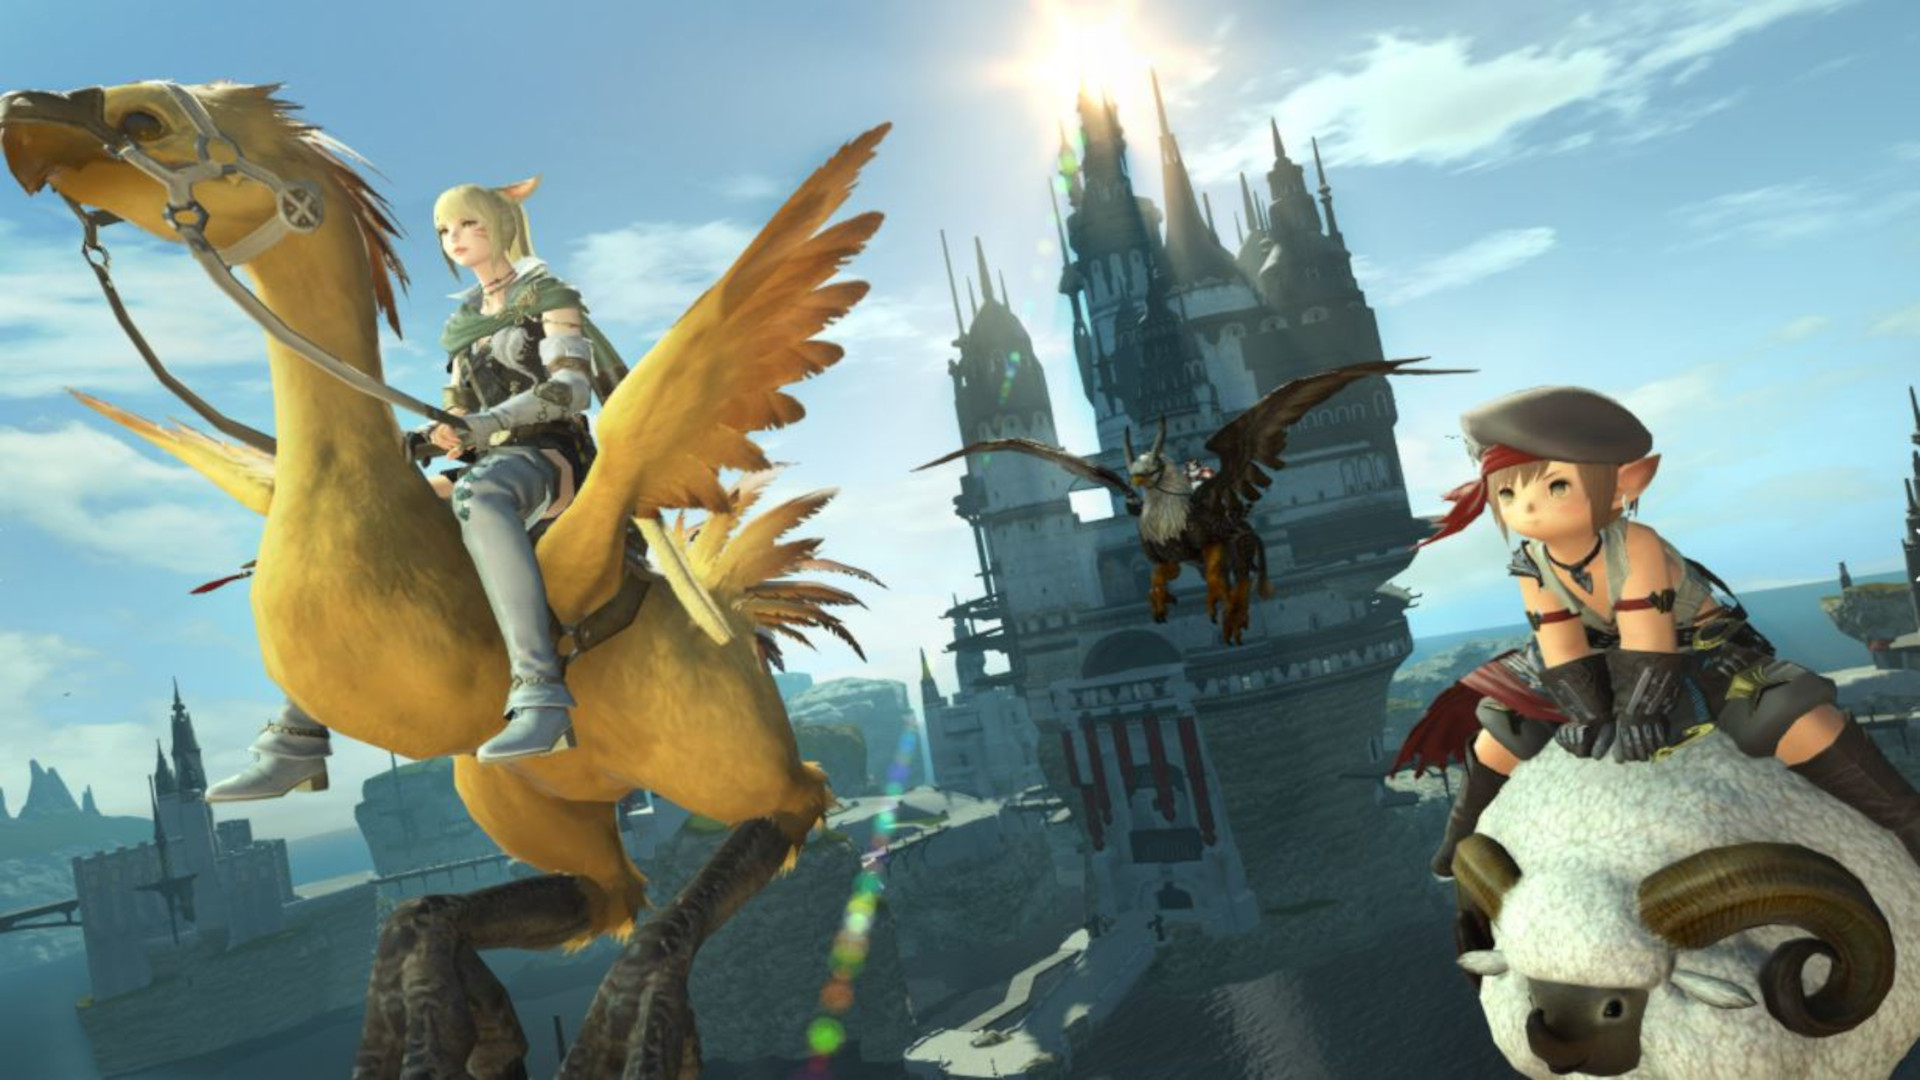 Final Fantasy 14 bans over 5,000 players for using real money in-game